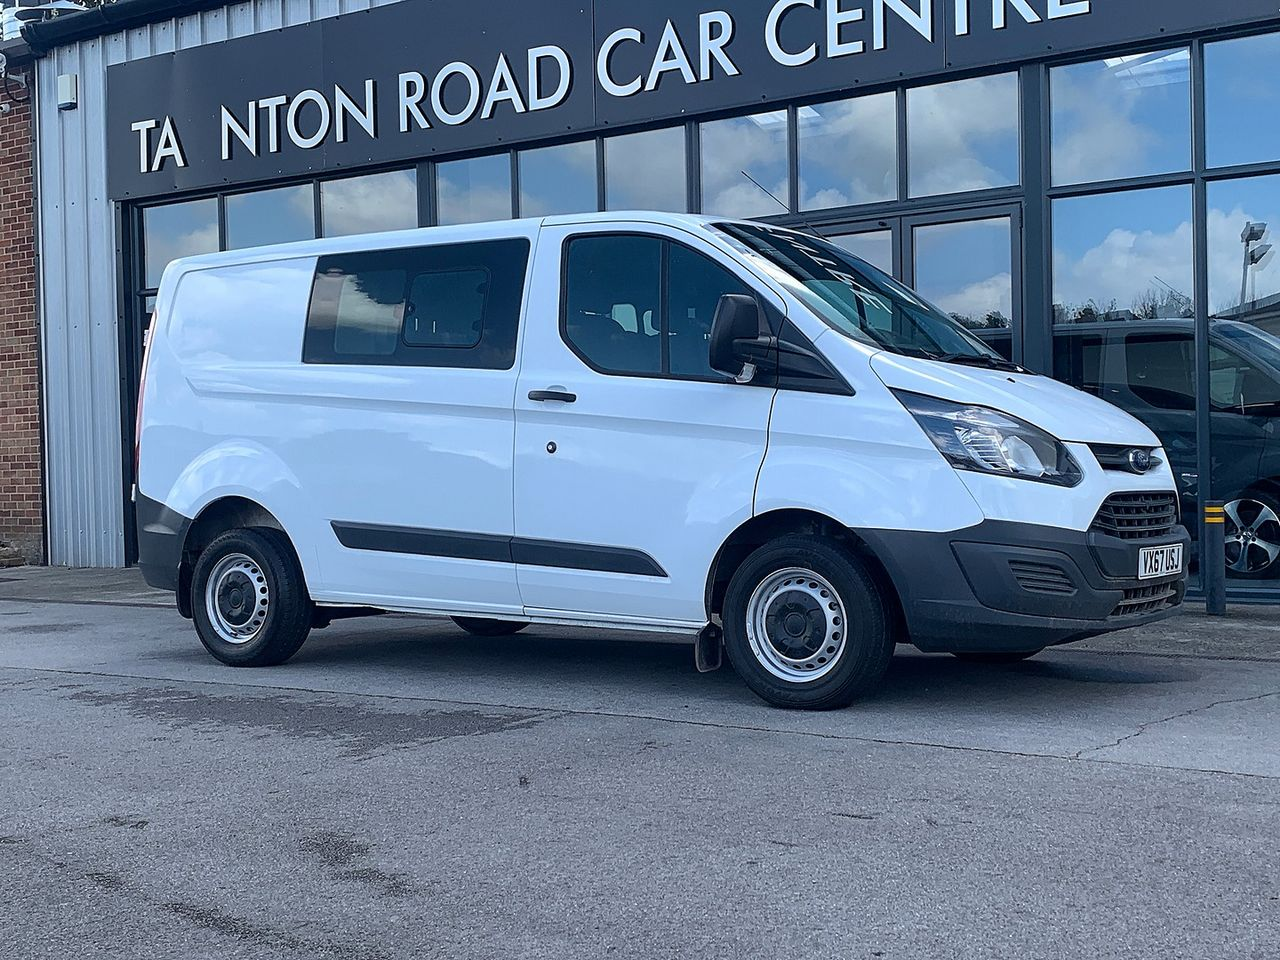 2017 FORD Transit Custom Crew Cab 2.0TD 105PS 270 FWD L1 - Picture 1 of 11